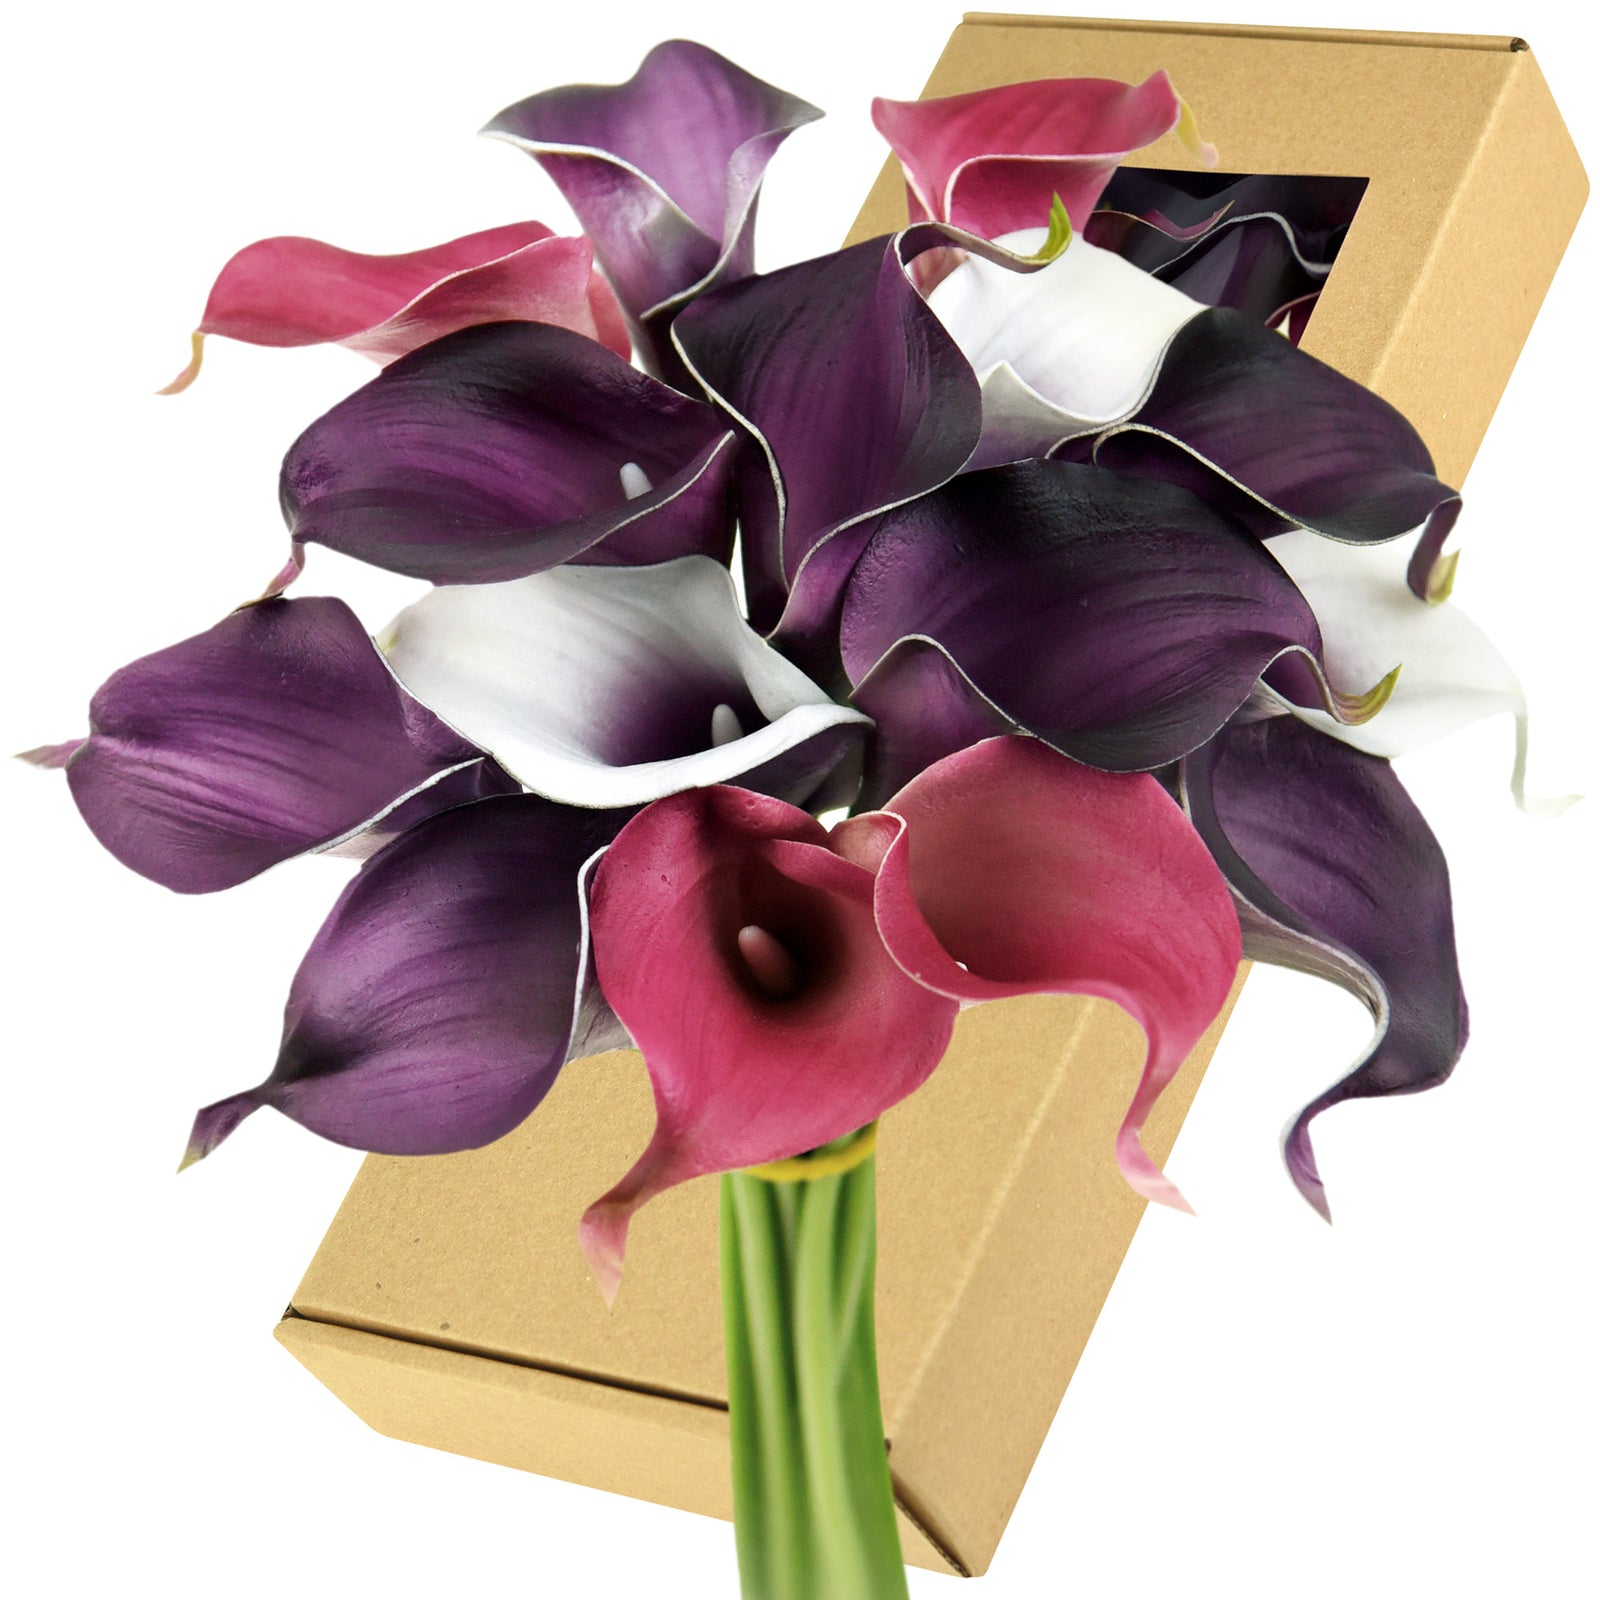 FiveSeasonStuff 15 Stems Real Touch (Joyful Purple Mix) Calla Lilies Artificial Flower Bouquet, Wedding, Bridal, Party, Home Décor DIY